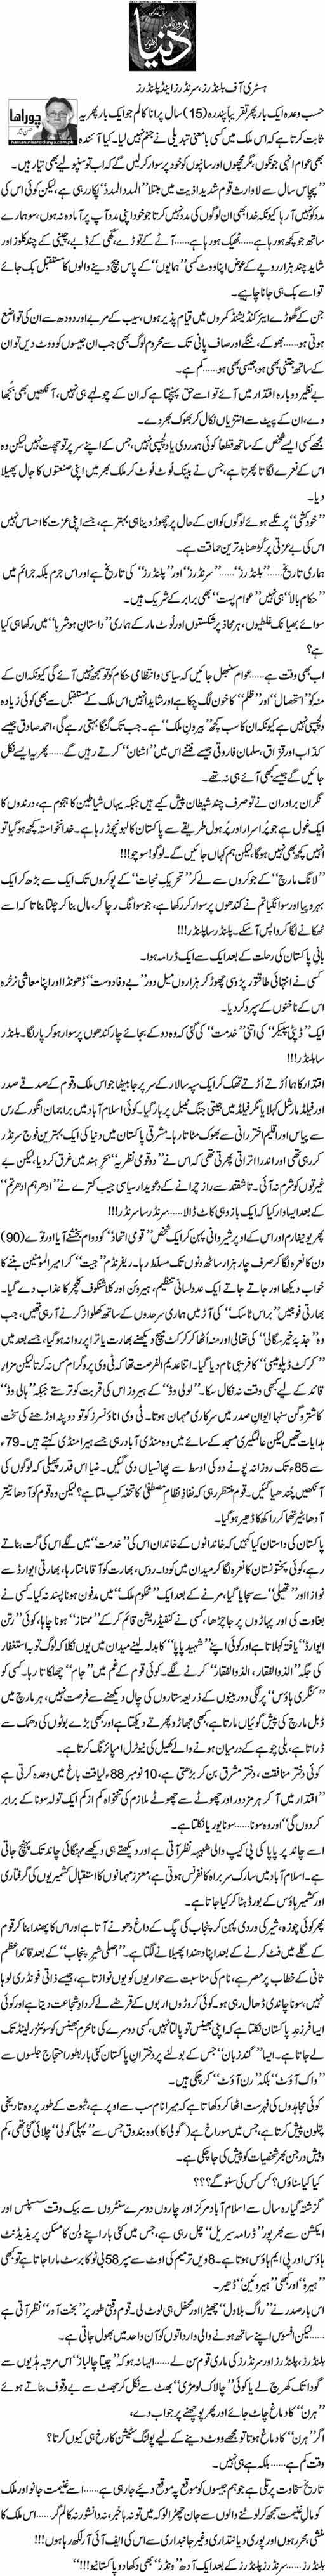 History of Blunders,Sir Nadars And Plunders - Hassan Nisar